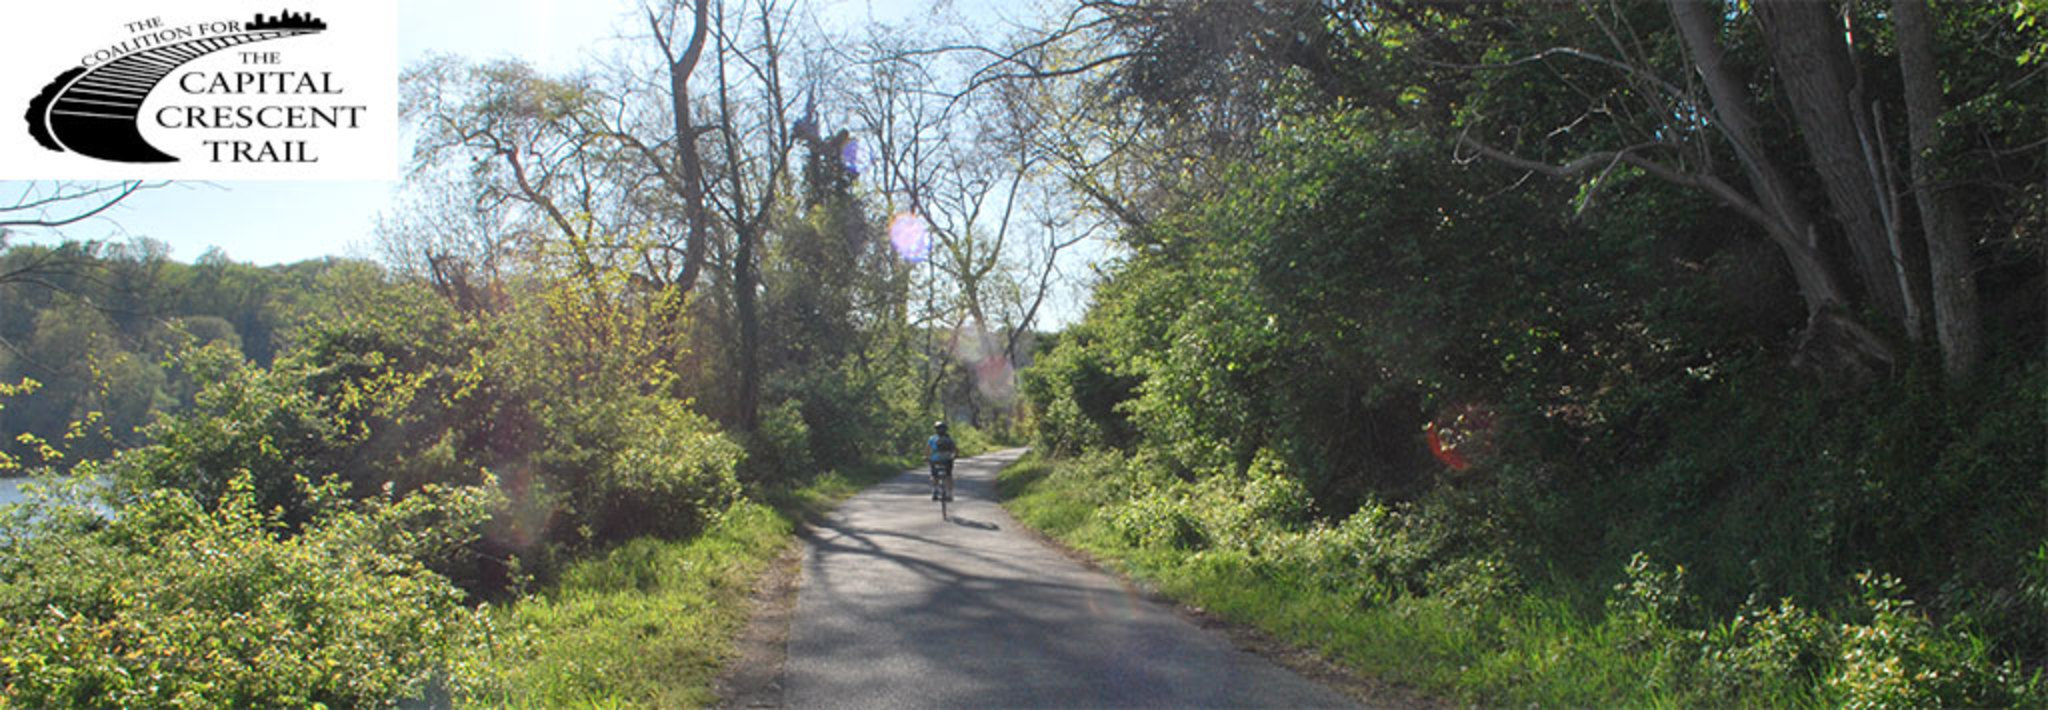 Google Map of Trail - Coalition for the Capital Crescent Trail on